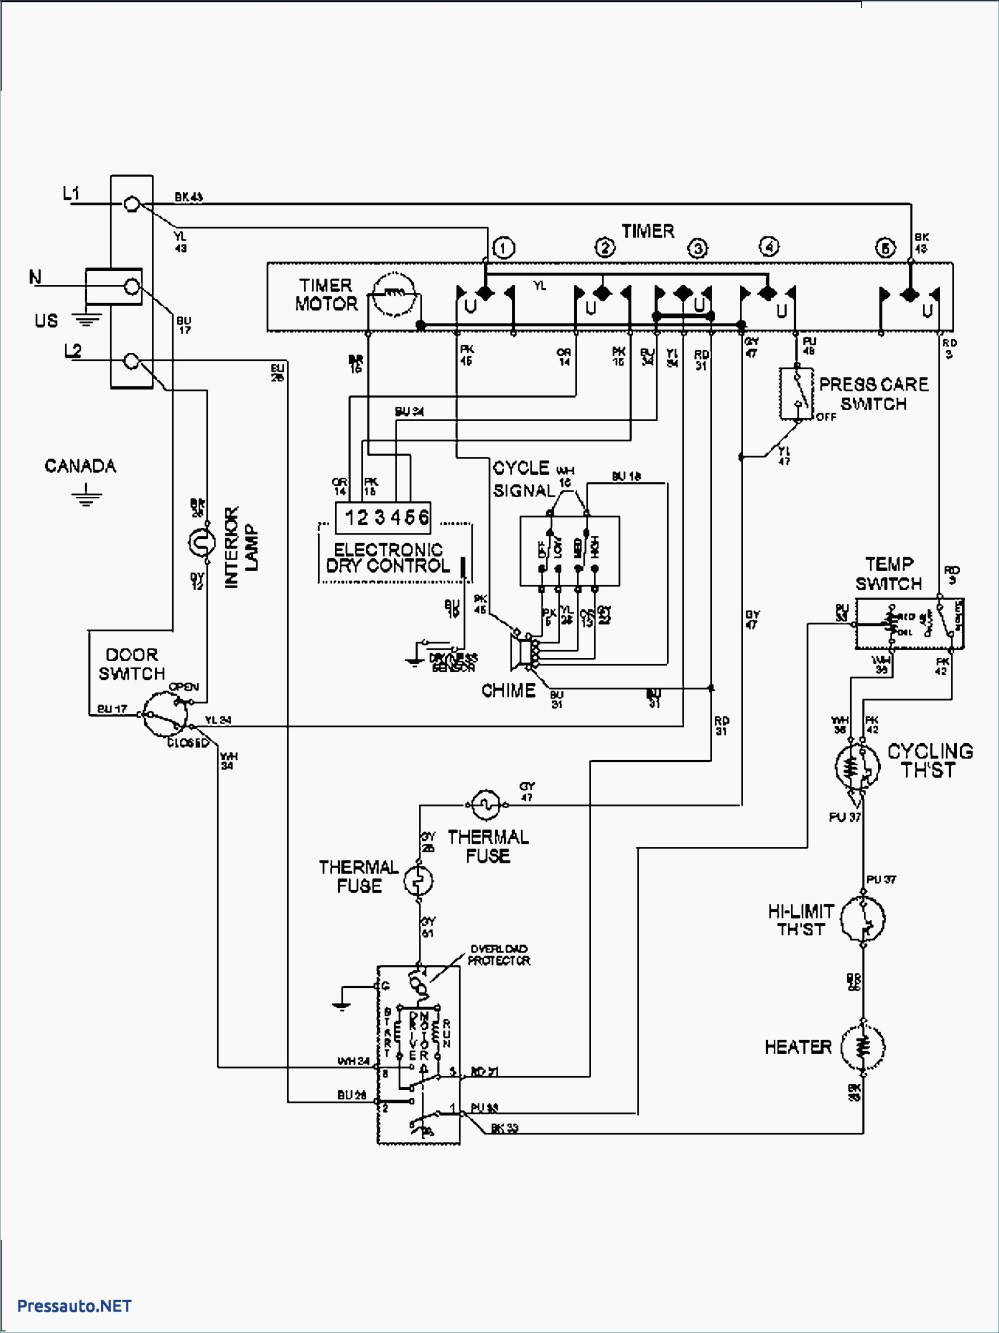 medium resolution of model wiring whirlpool diagram dryer ler7646aw2 use wiring diagram wiring diagram whirlpool dryer model wgd4800bq